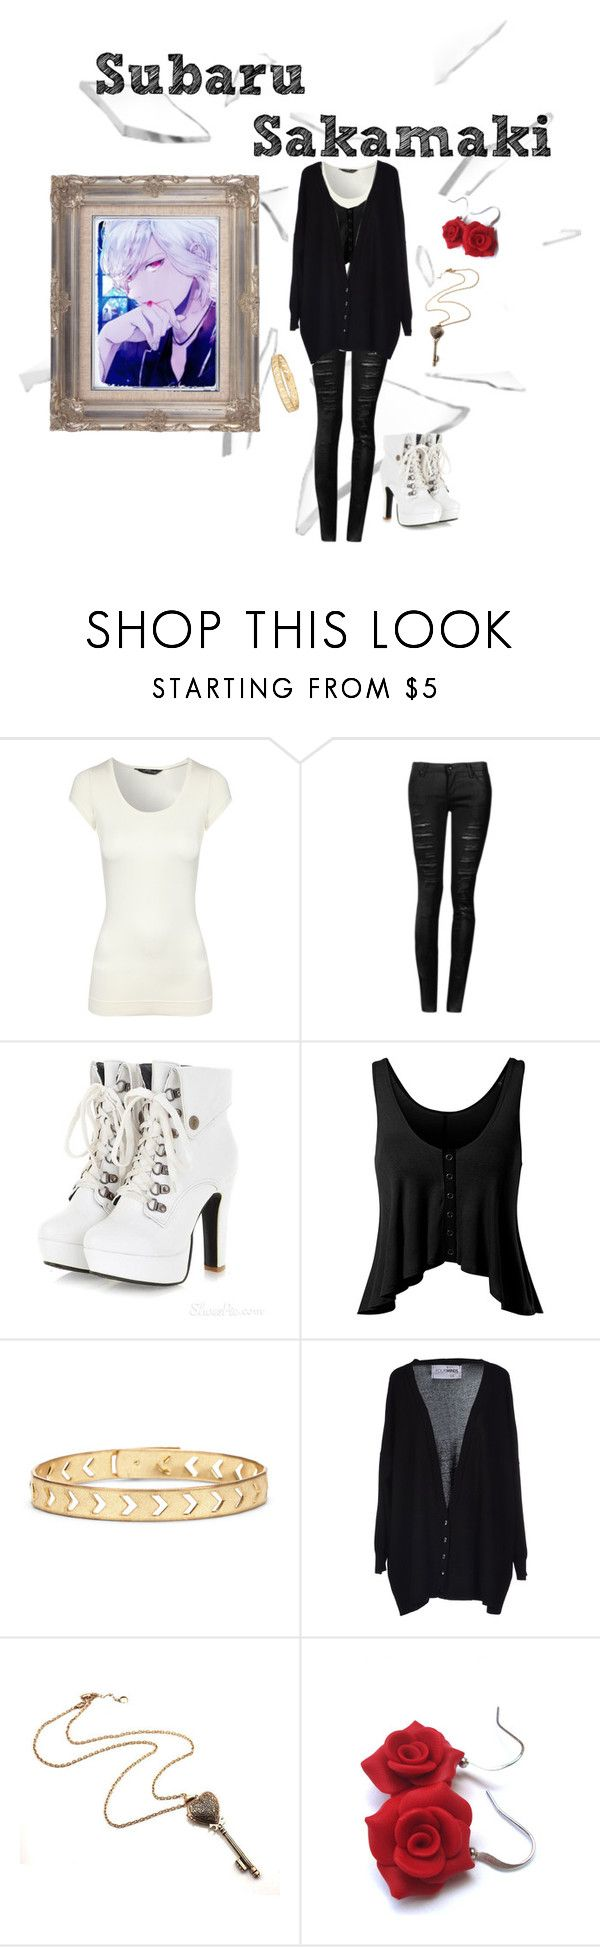 """Sakamaki Subaru Casual Cosplay (Diabolik Lovers)"" by psychometorzi ❤ liked on Polyvore featuring Jane Norman, Sole Society and FourMinds"